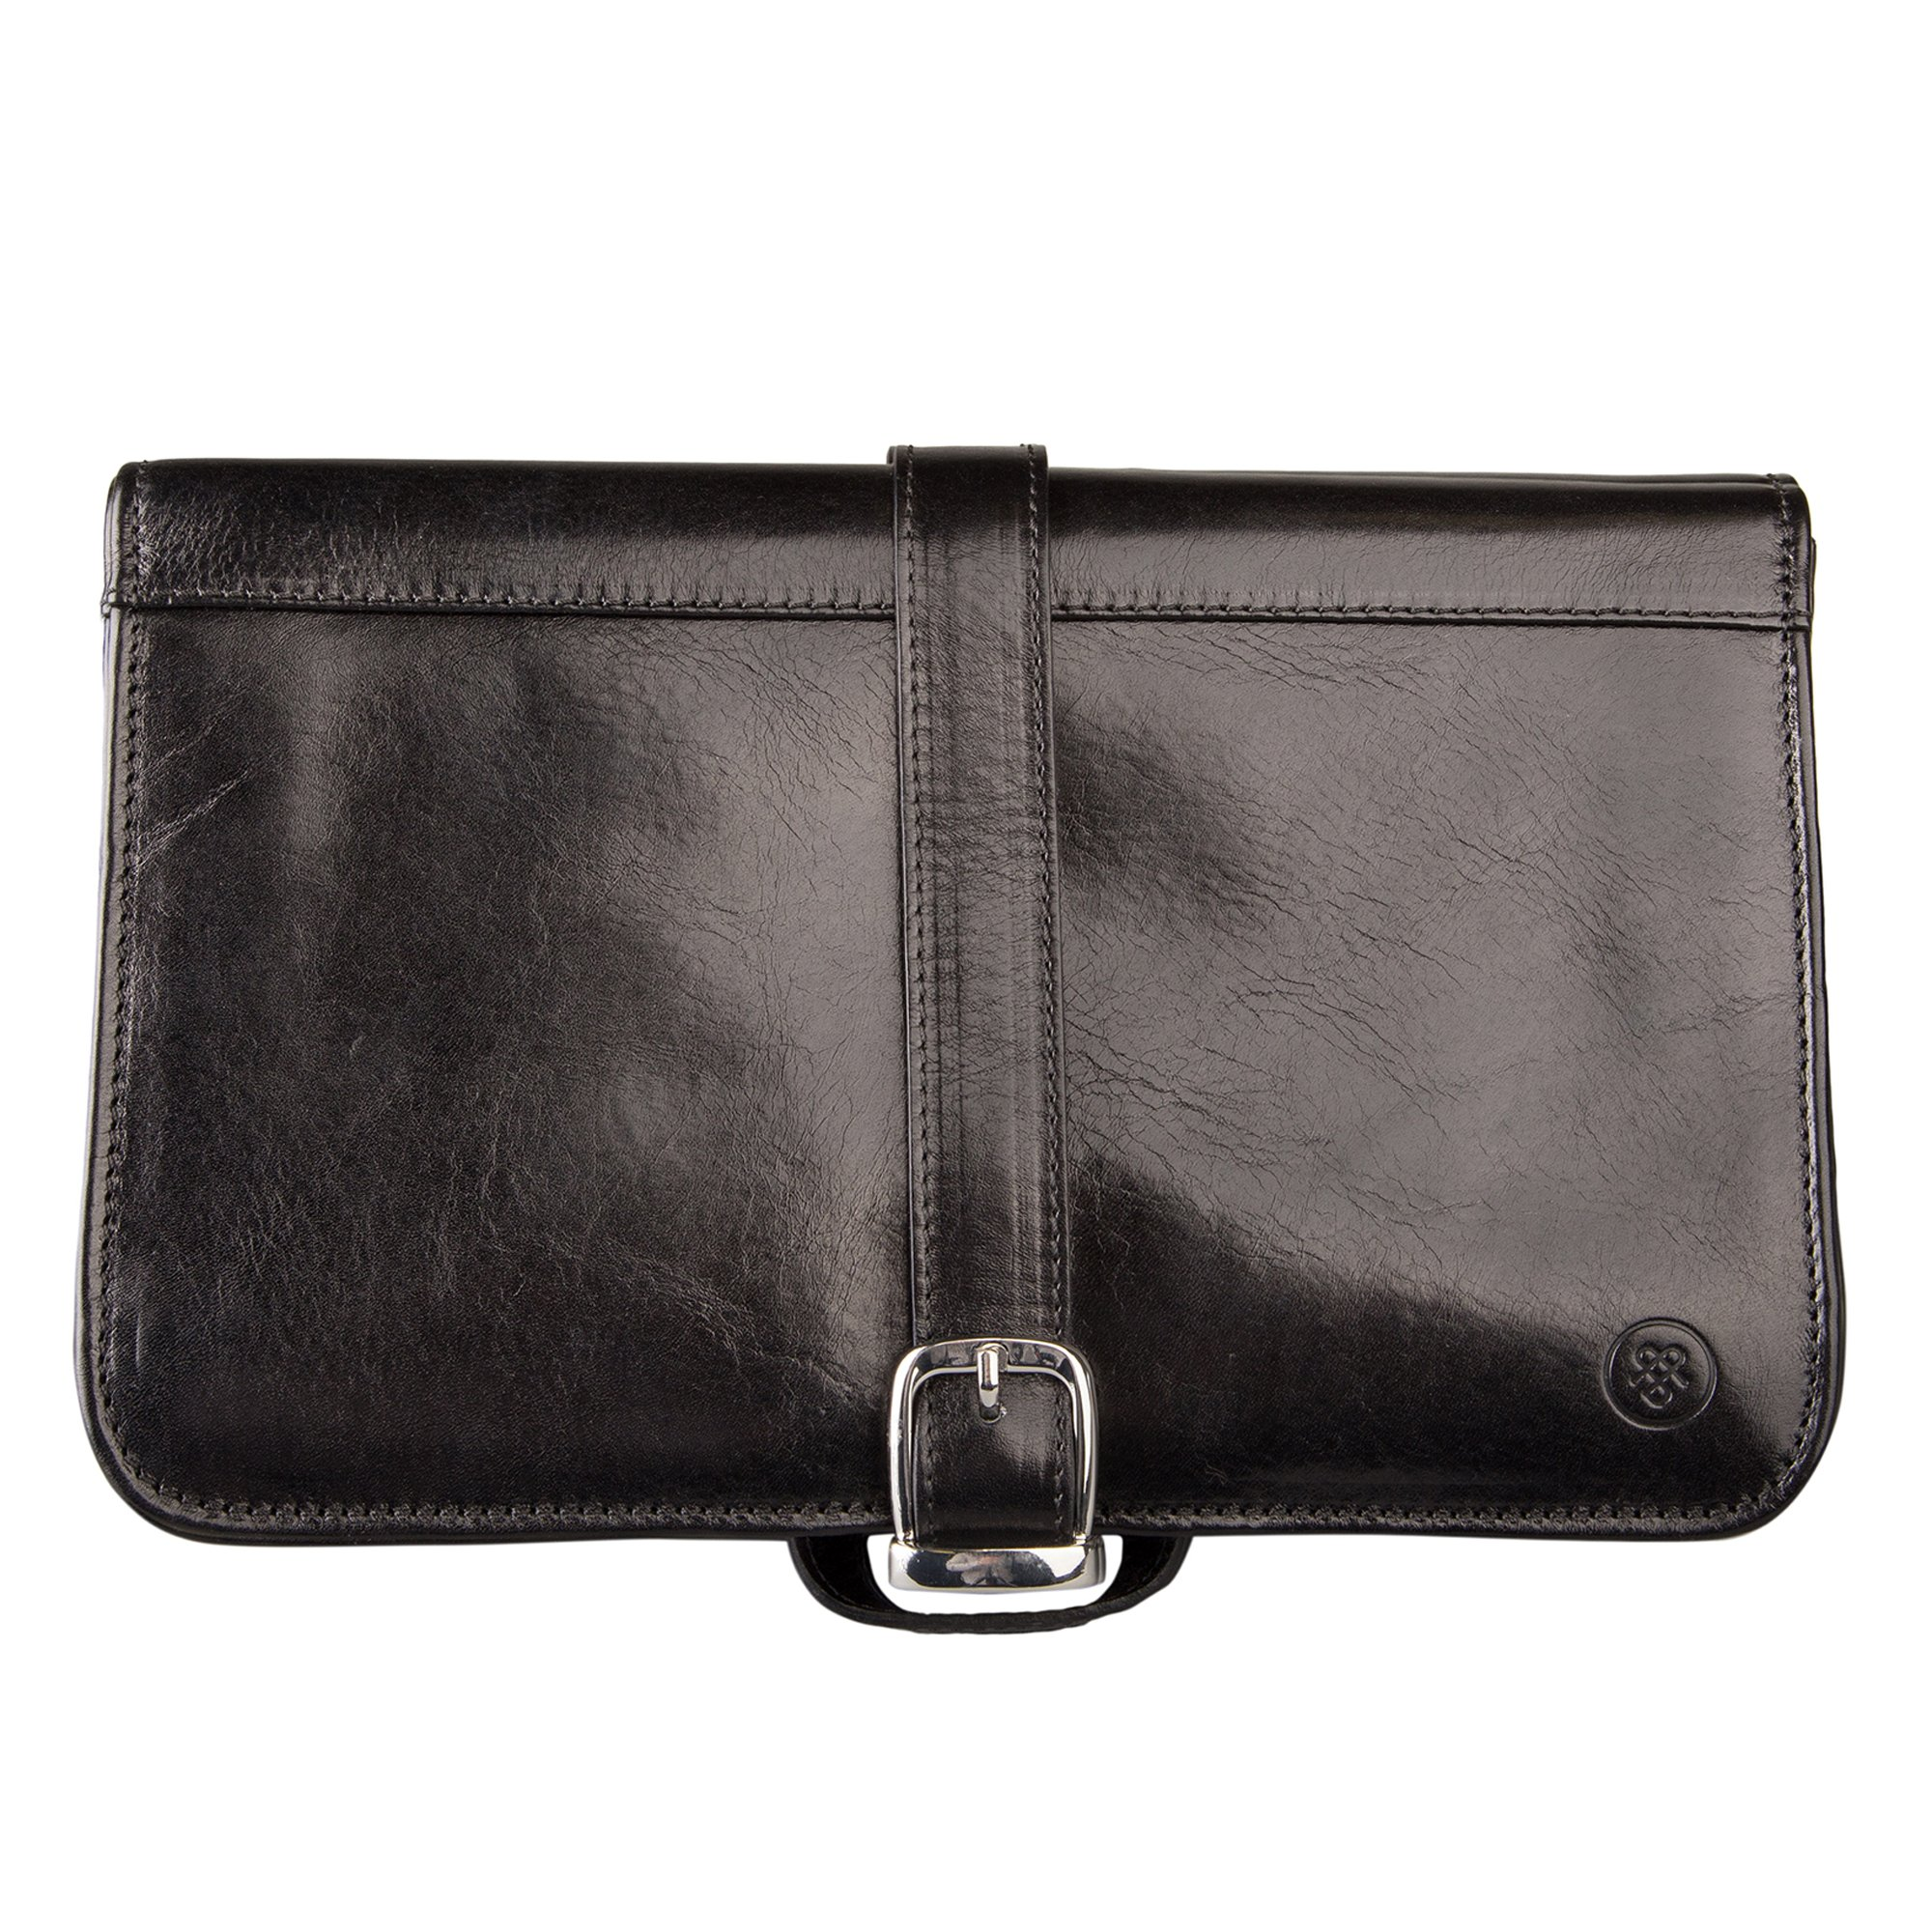 Maxwell Scott® Luxury Black Leather Toiletry Case (The Pratello) - One Size by Maxwell Scott Bags